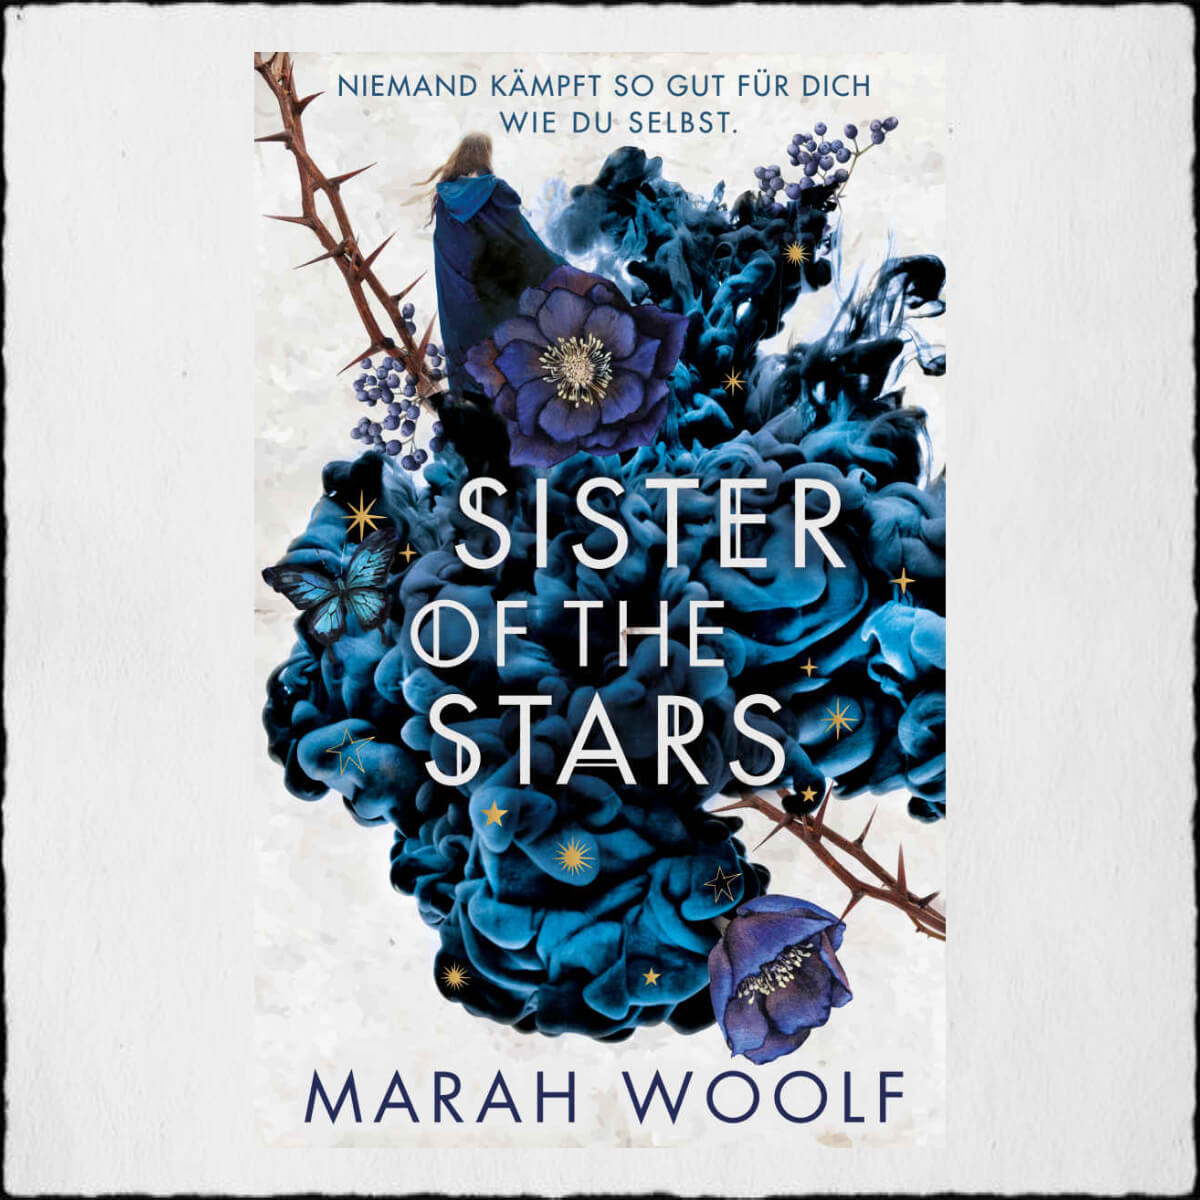 "Marah Woolf ""Sister of the Stars - HexenSchwesternSaga 1"" © 2020 Marah Woolf in Selbstpublikation"